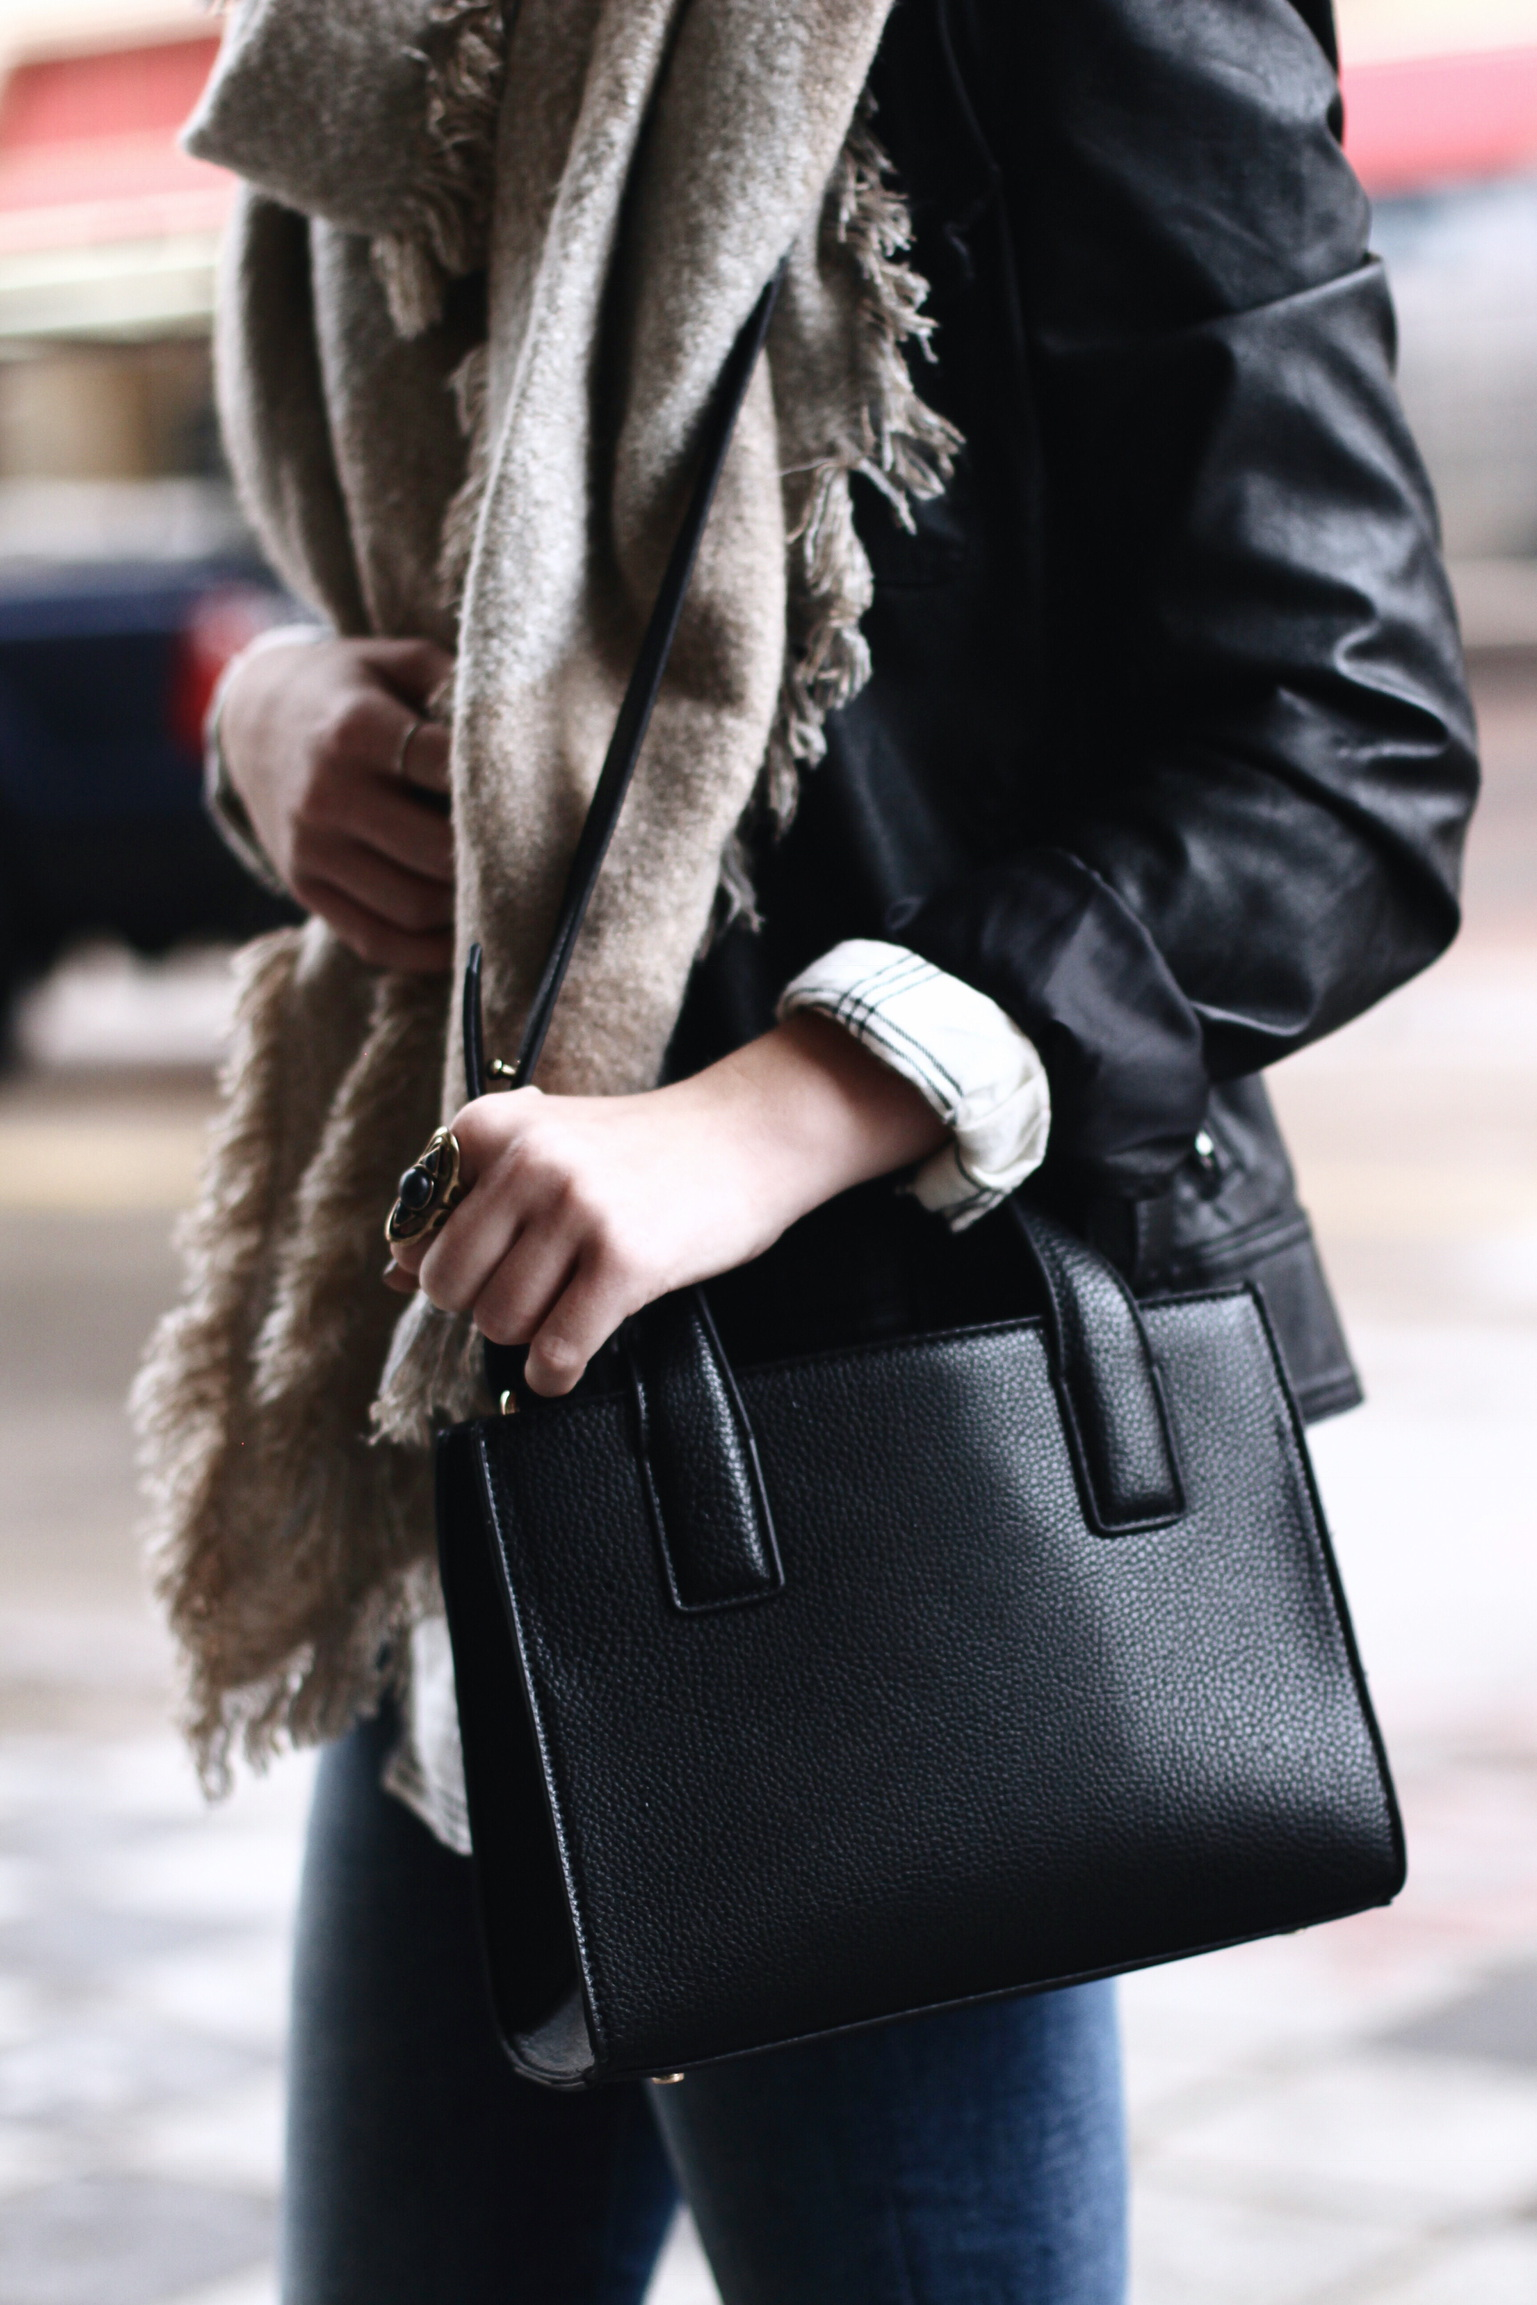 Bag / Urban Outfitters